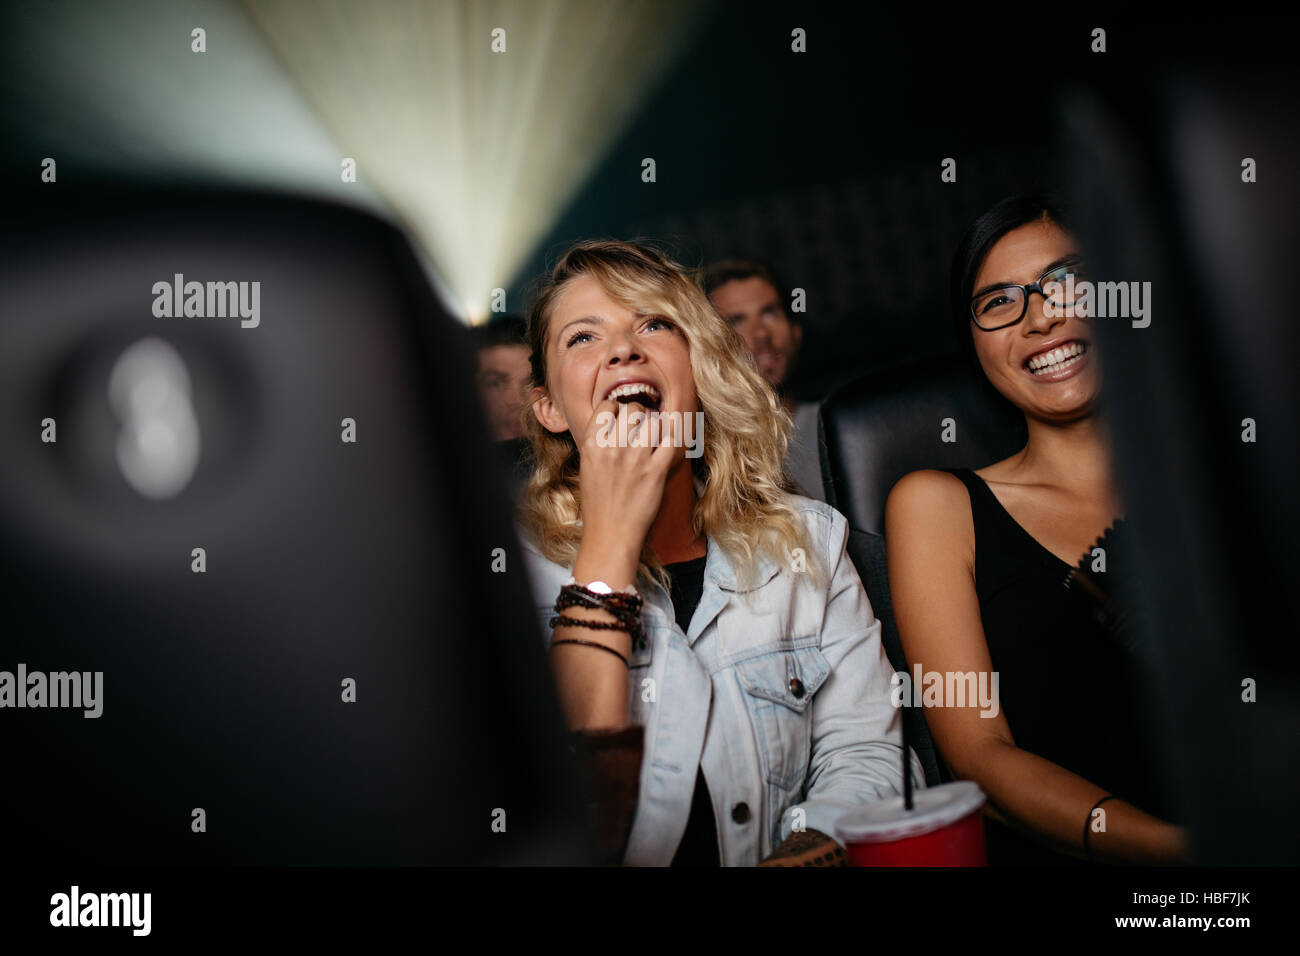 Smiling young women in cinema hall eating popcorn and watching movie - Stock Image